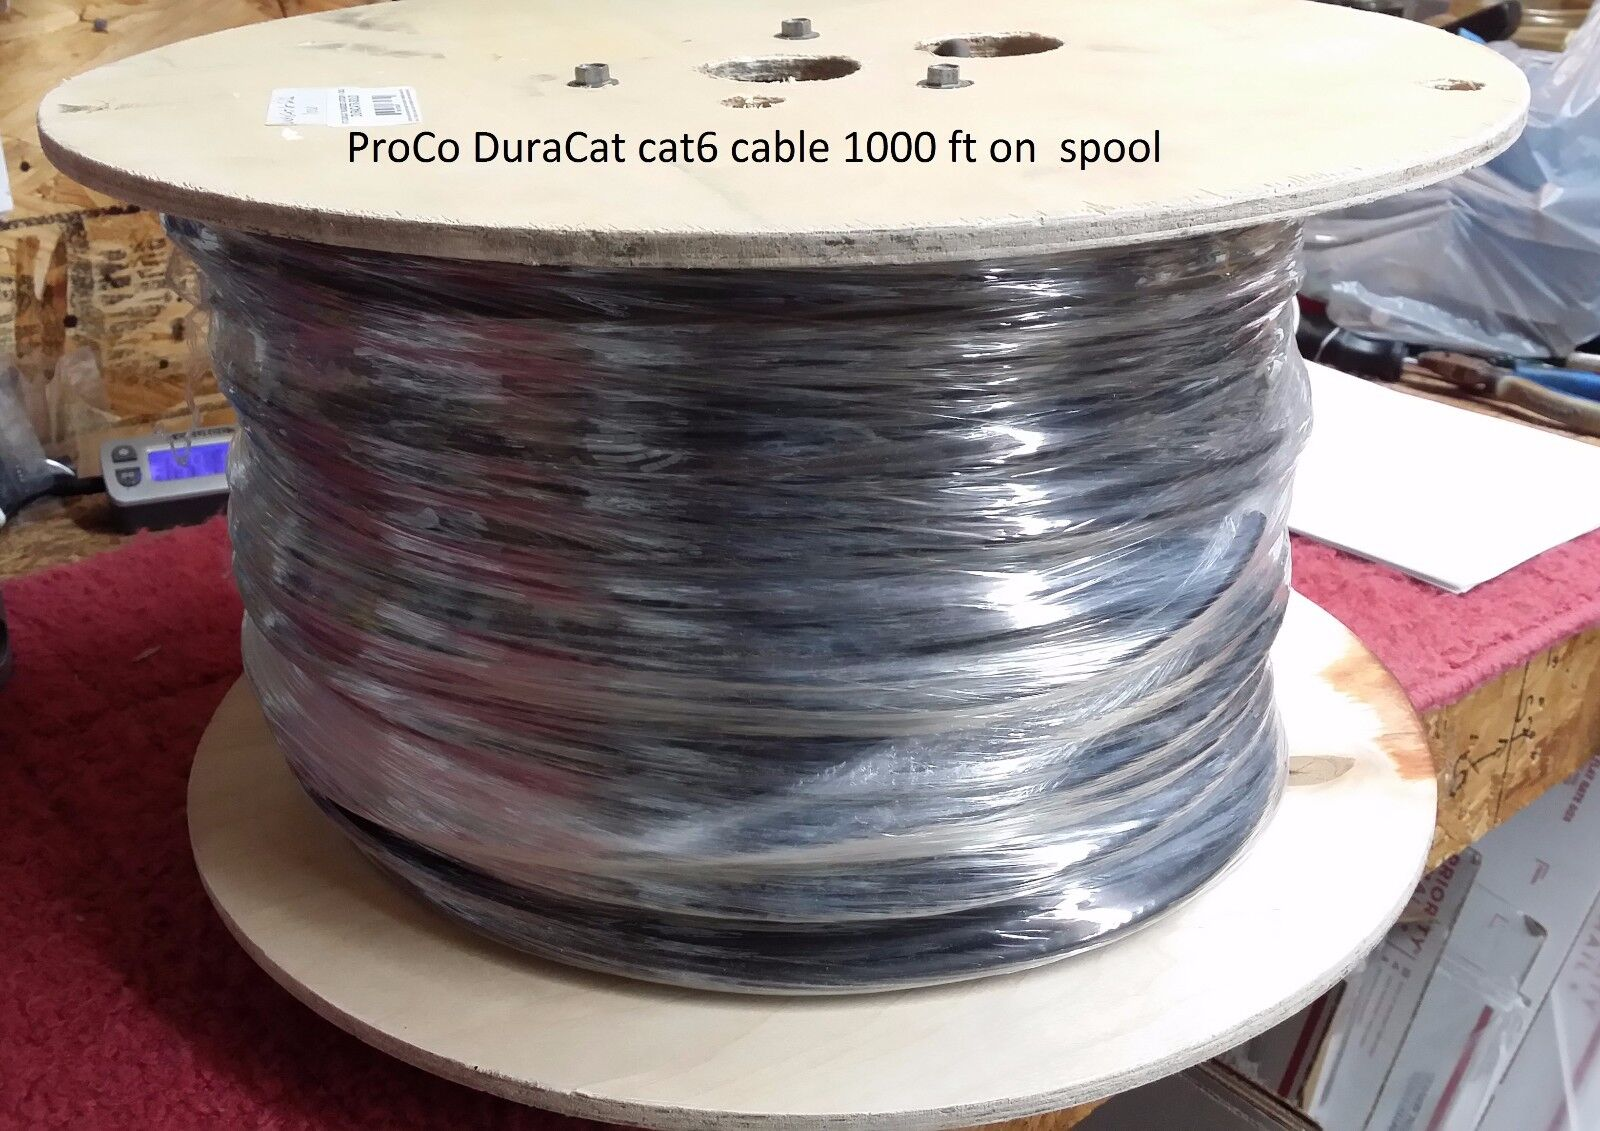 1000 feet ProCo DuraCat cat6 UTP bulk Cable US-MADE Ships FREE to US Zip Codes